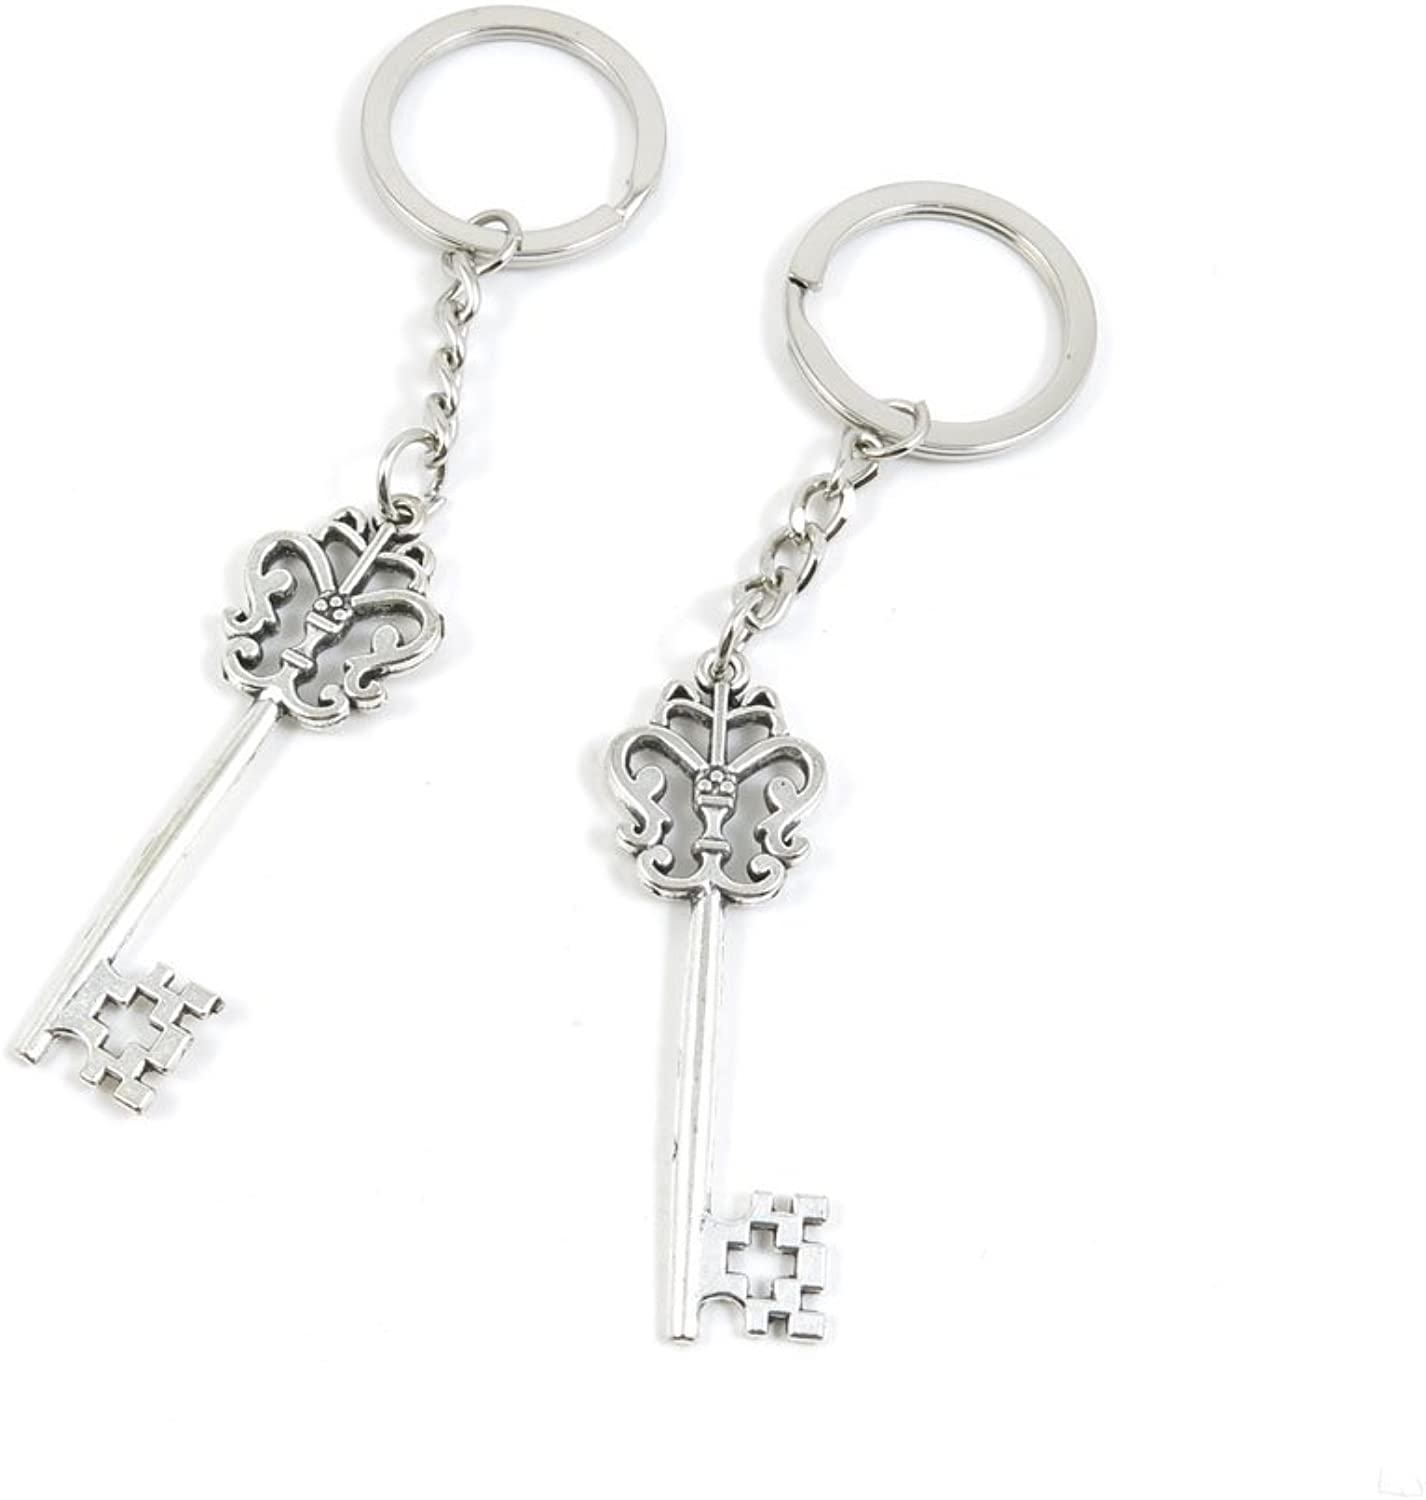 100 Pieces Keychain Keyring Door Car Key Chain Ring Tag Charms Bulk Supply Jewelry Making Clasp Findings S7LE5U Flower Skeleton Key